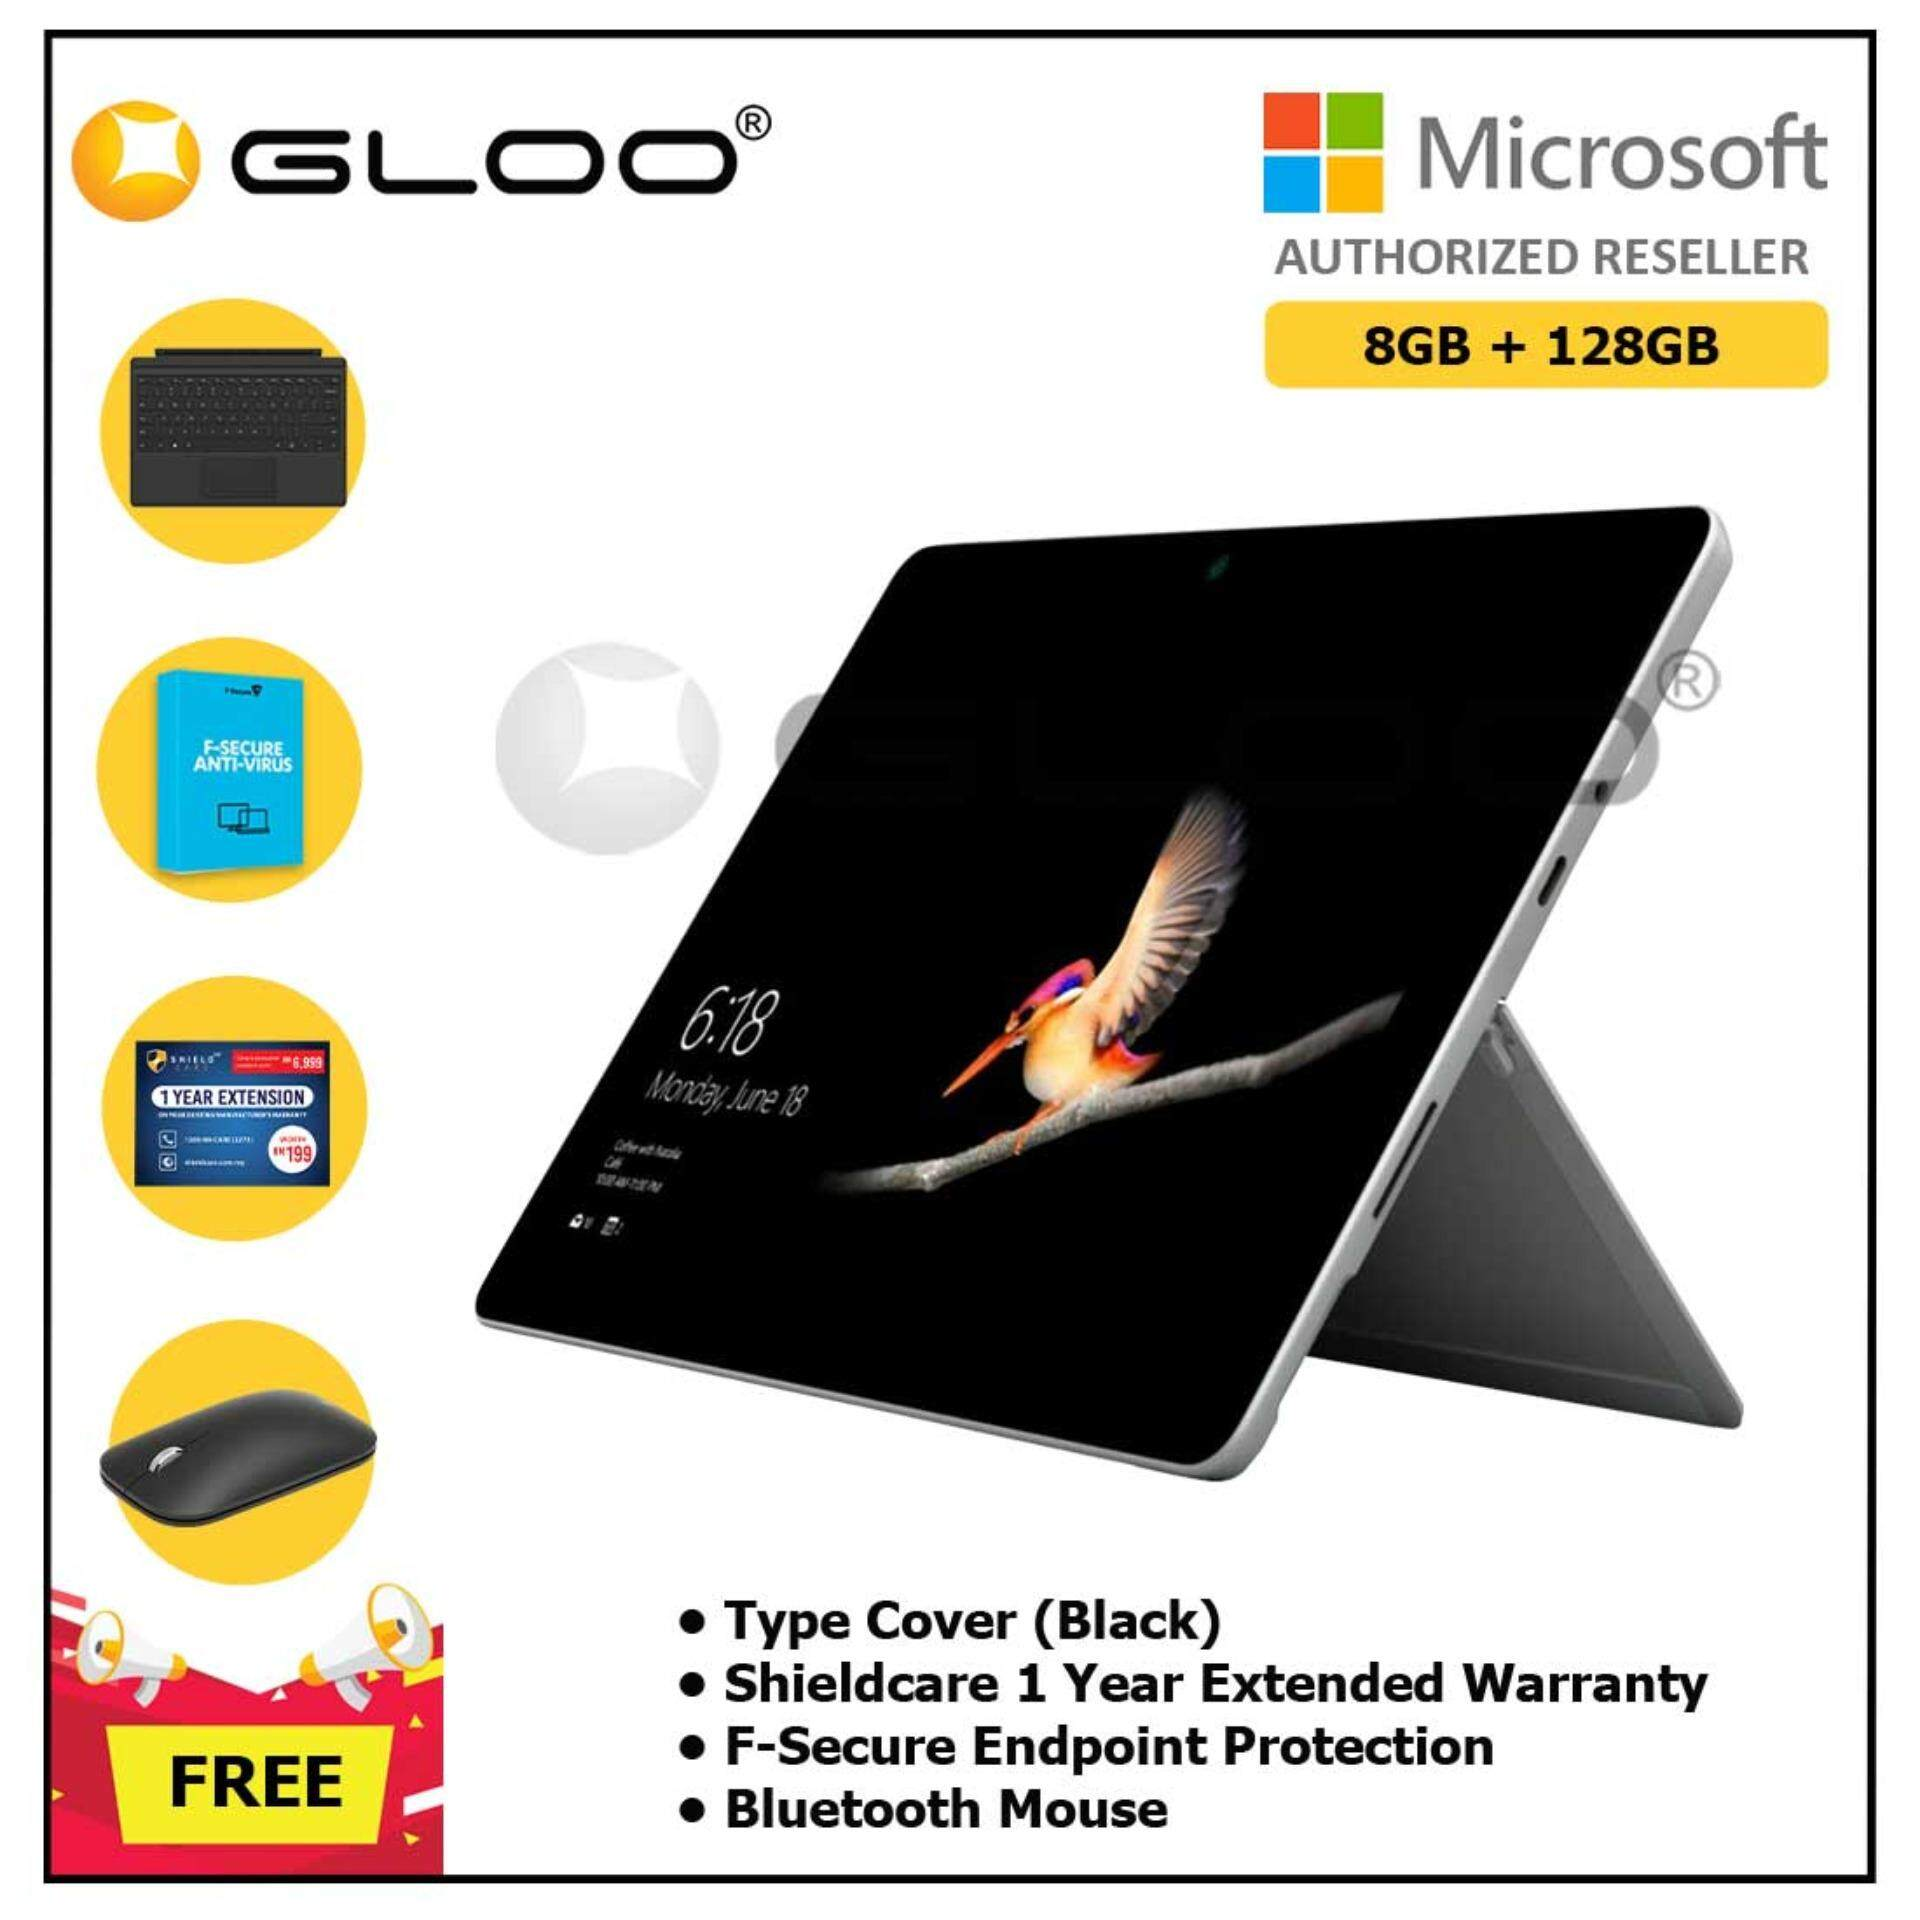 Microsoft Surface Go Y/8GB 128GB + Surface Go Type Cover Black + Shieldcare 1 Year Entended Warranty + F-Secure Endpoint Protection + Microsoft Bluetooth Mouse